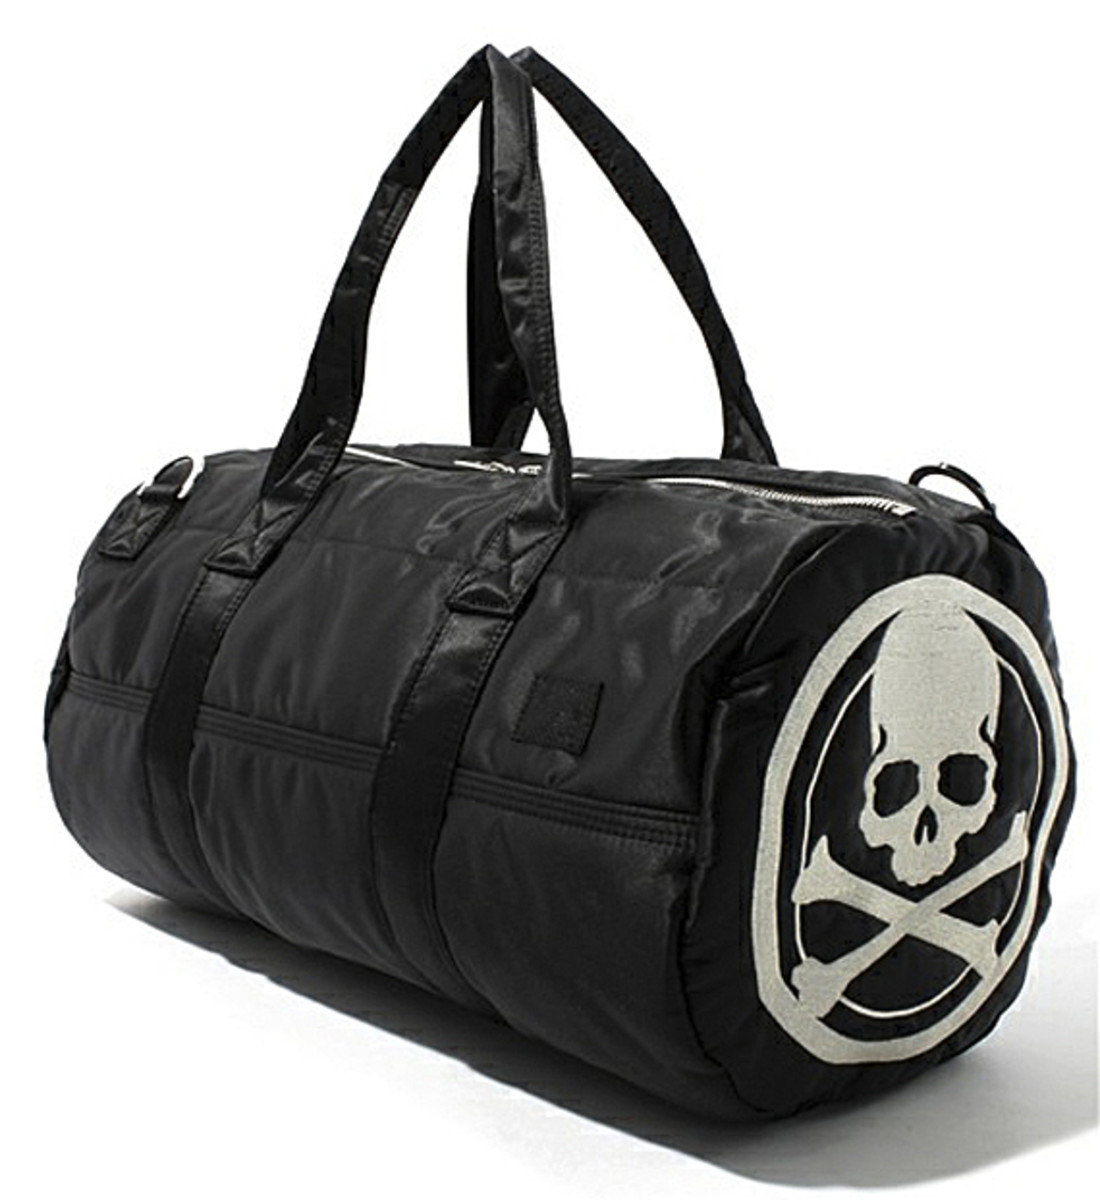 mastermind-JAPAN-PORTER-Drum-Boston-Bag-01